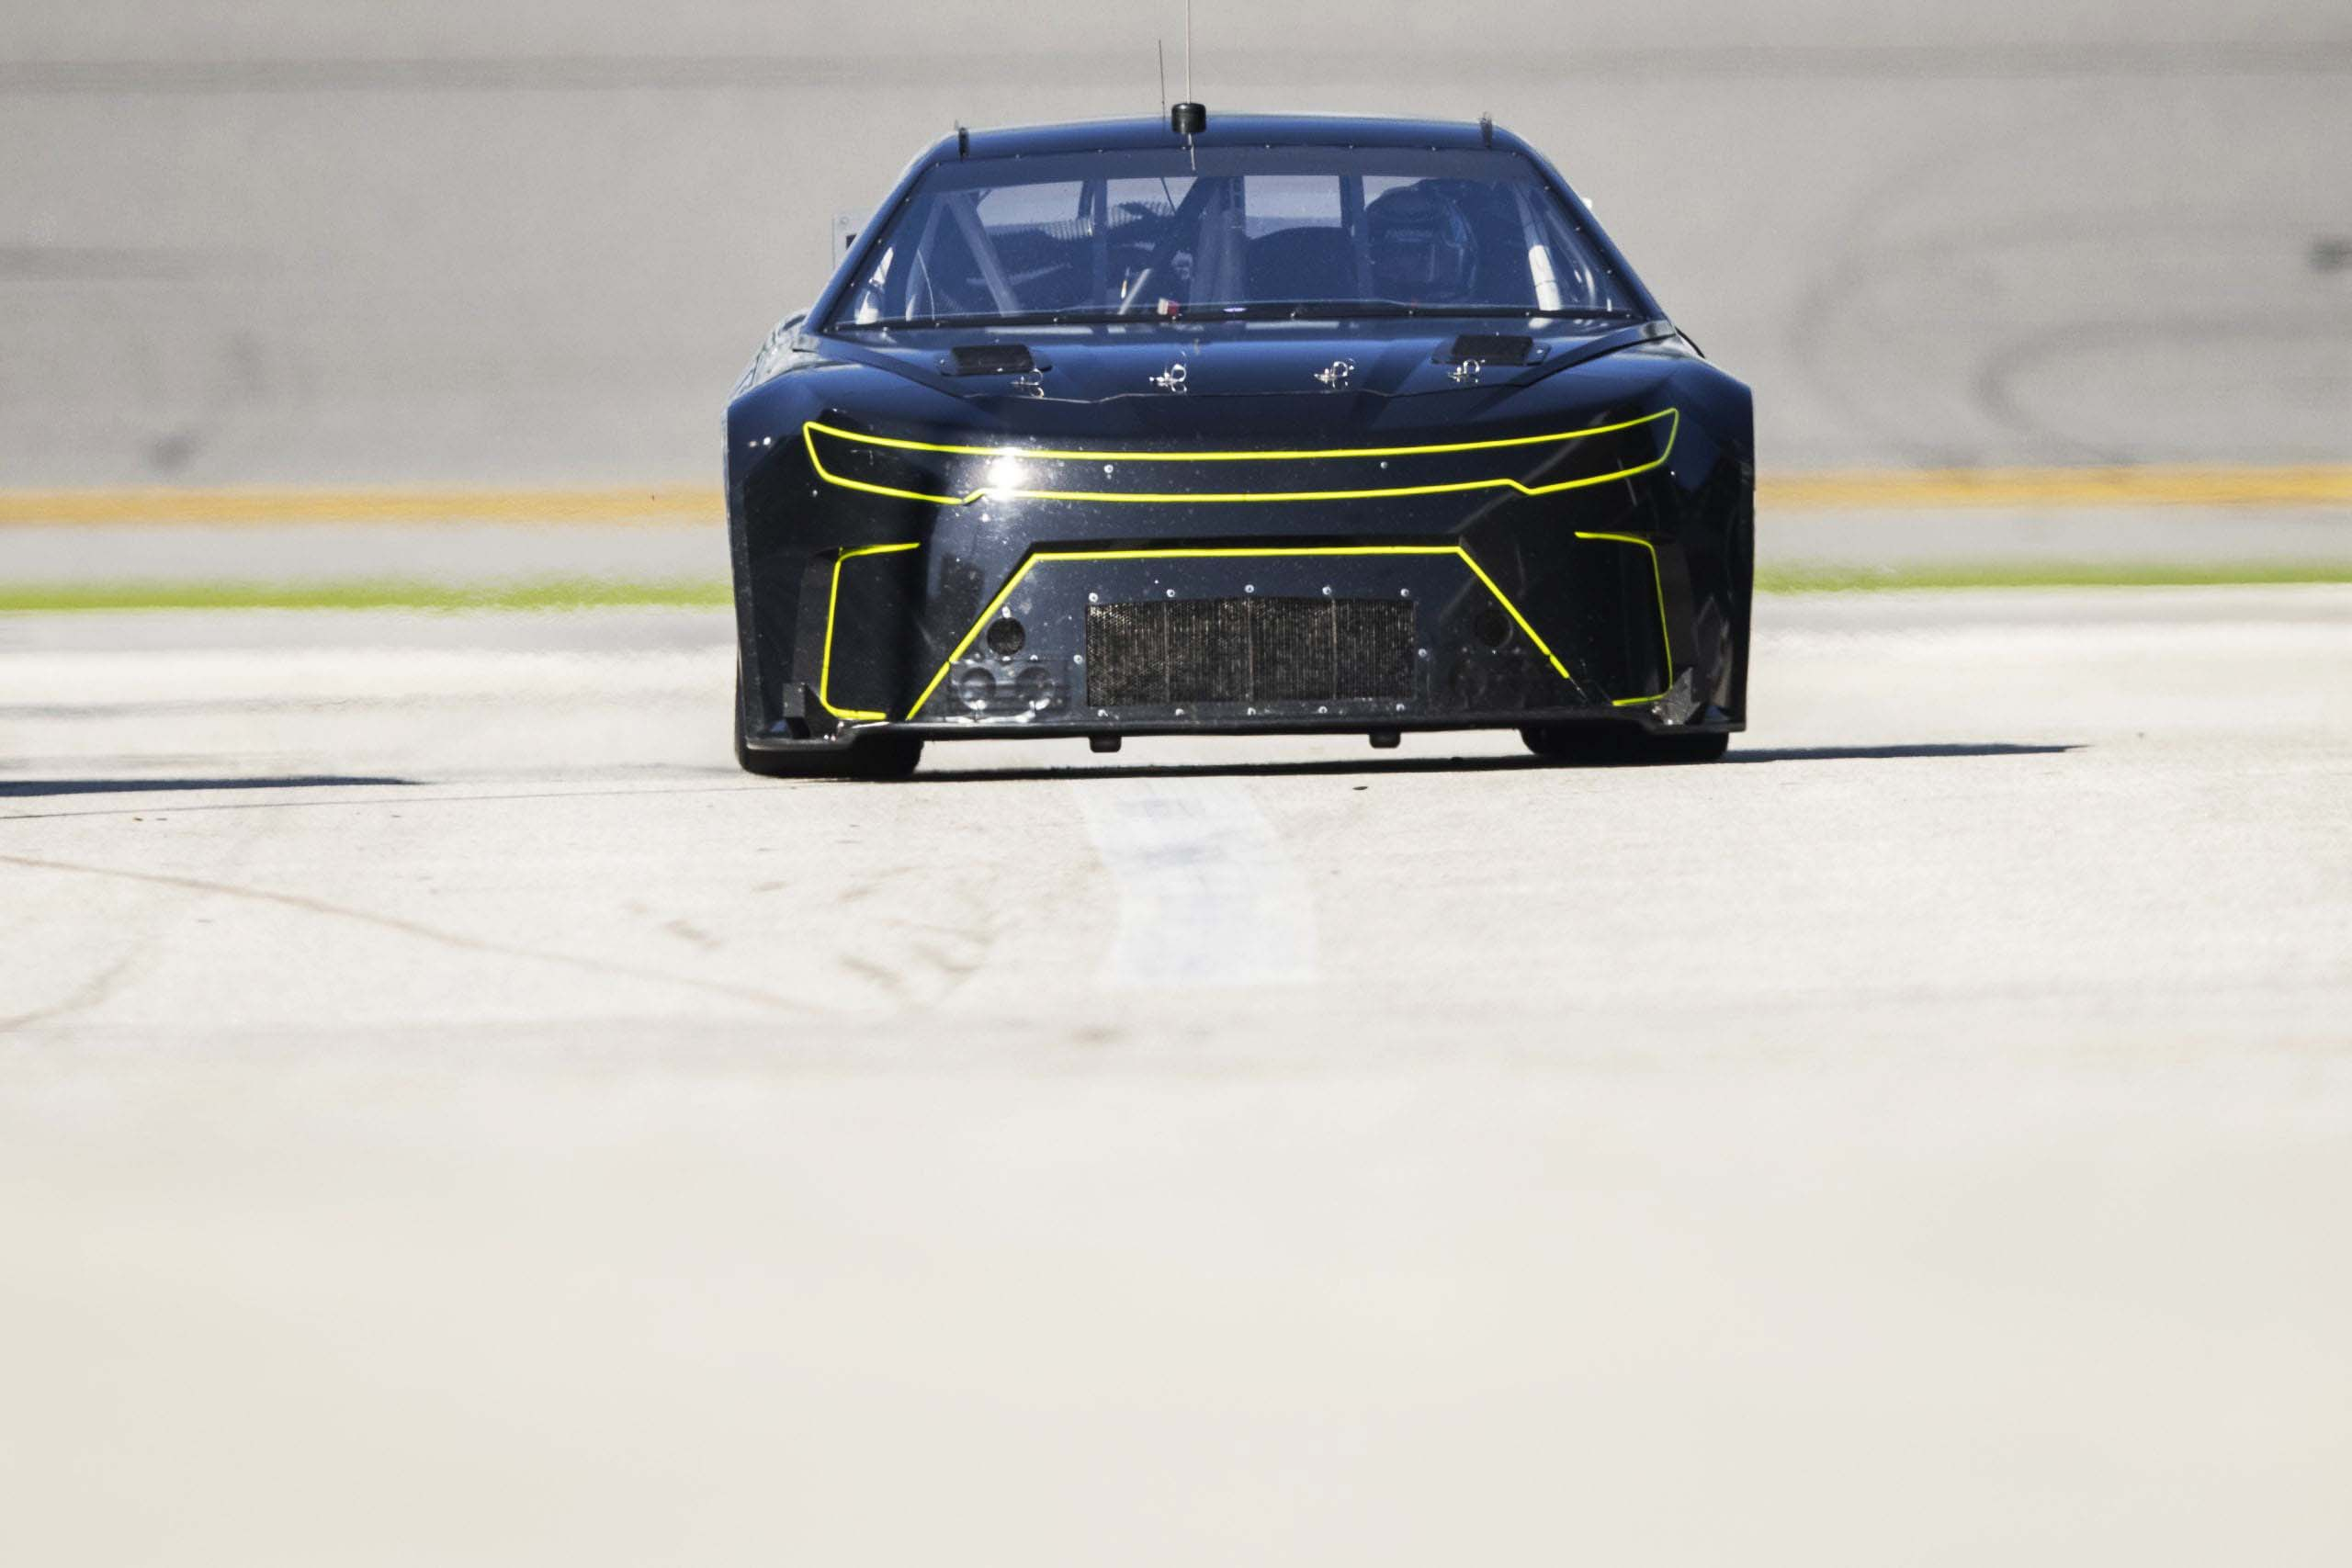 Front nose of NASCAR Next Gen car - Ground clearance